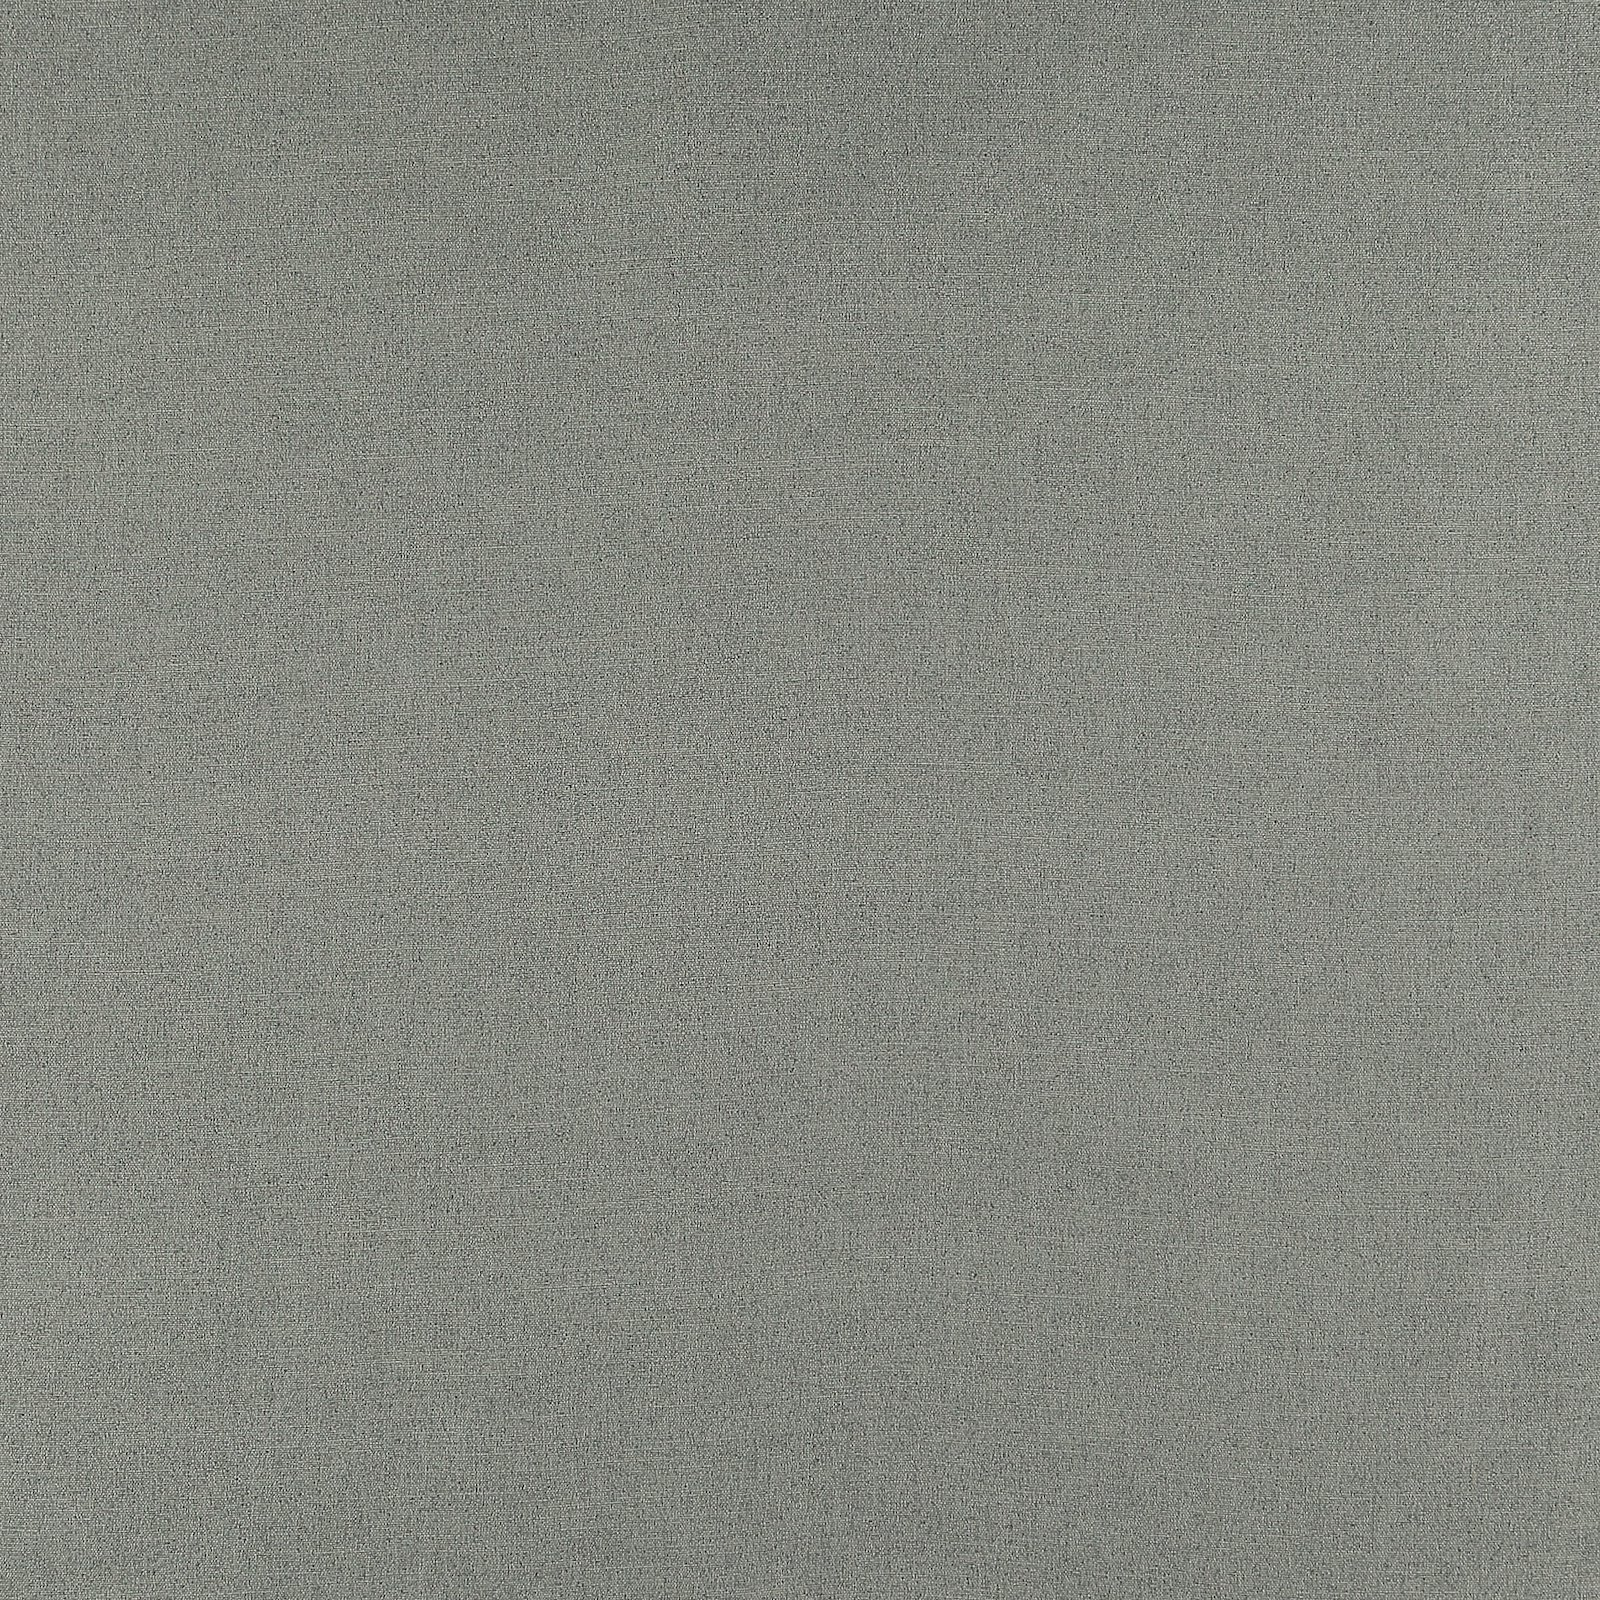 Upholstery fabric steel grey w/backing 824093_pack_solid